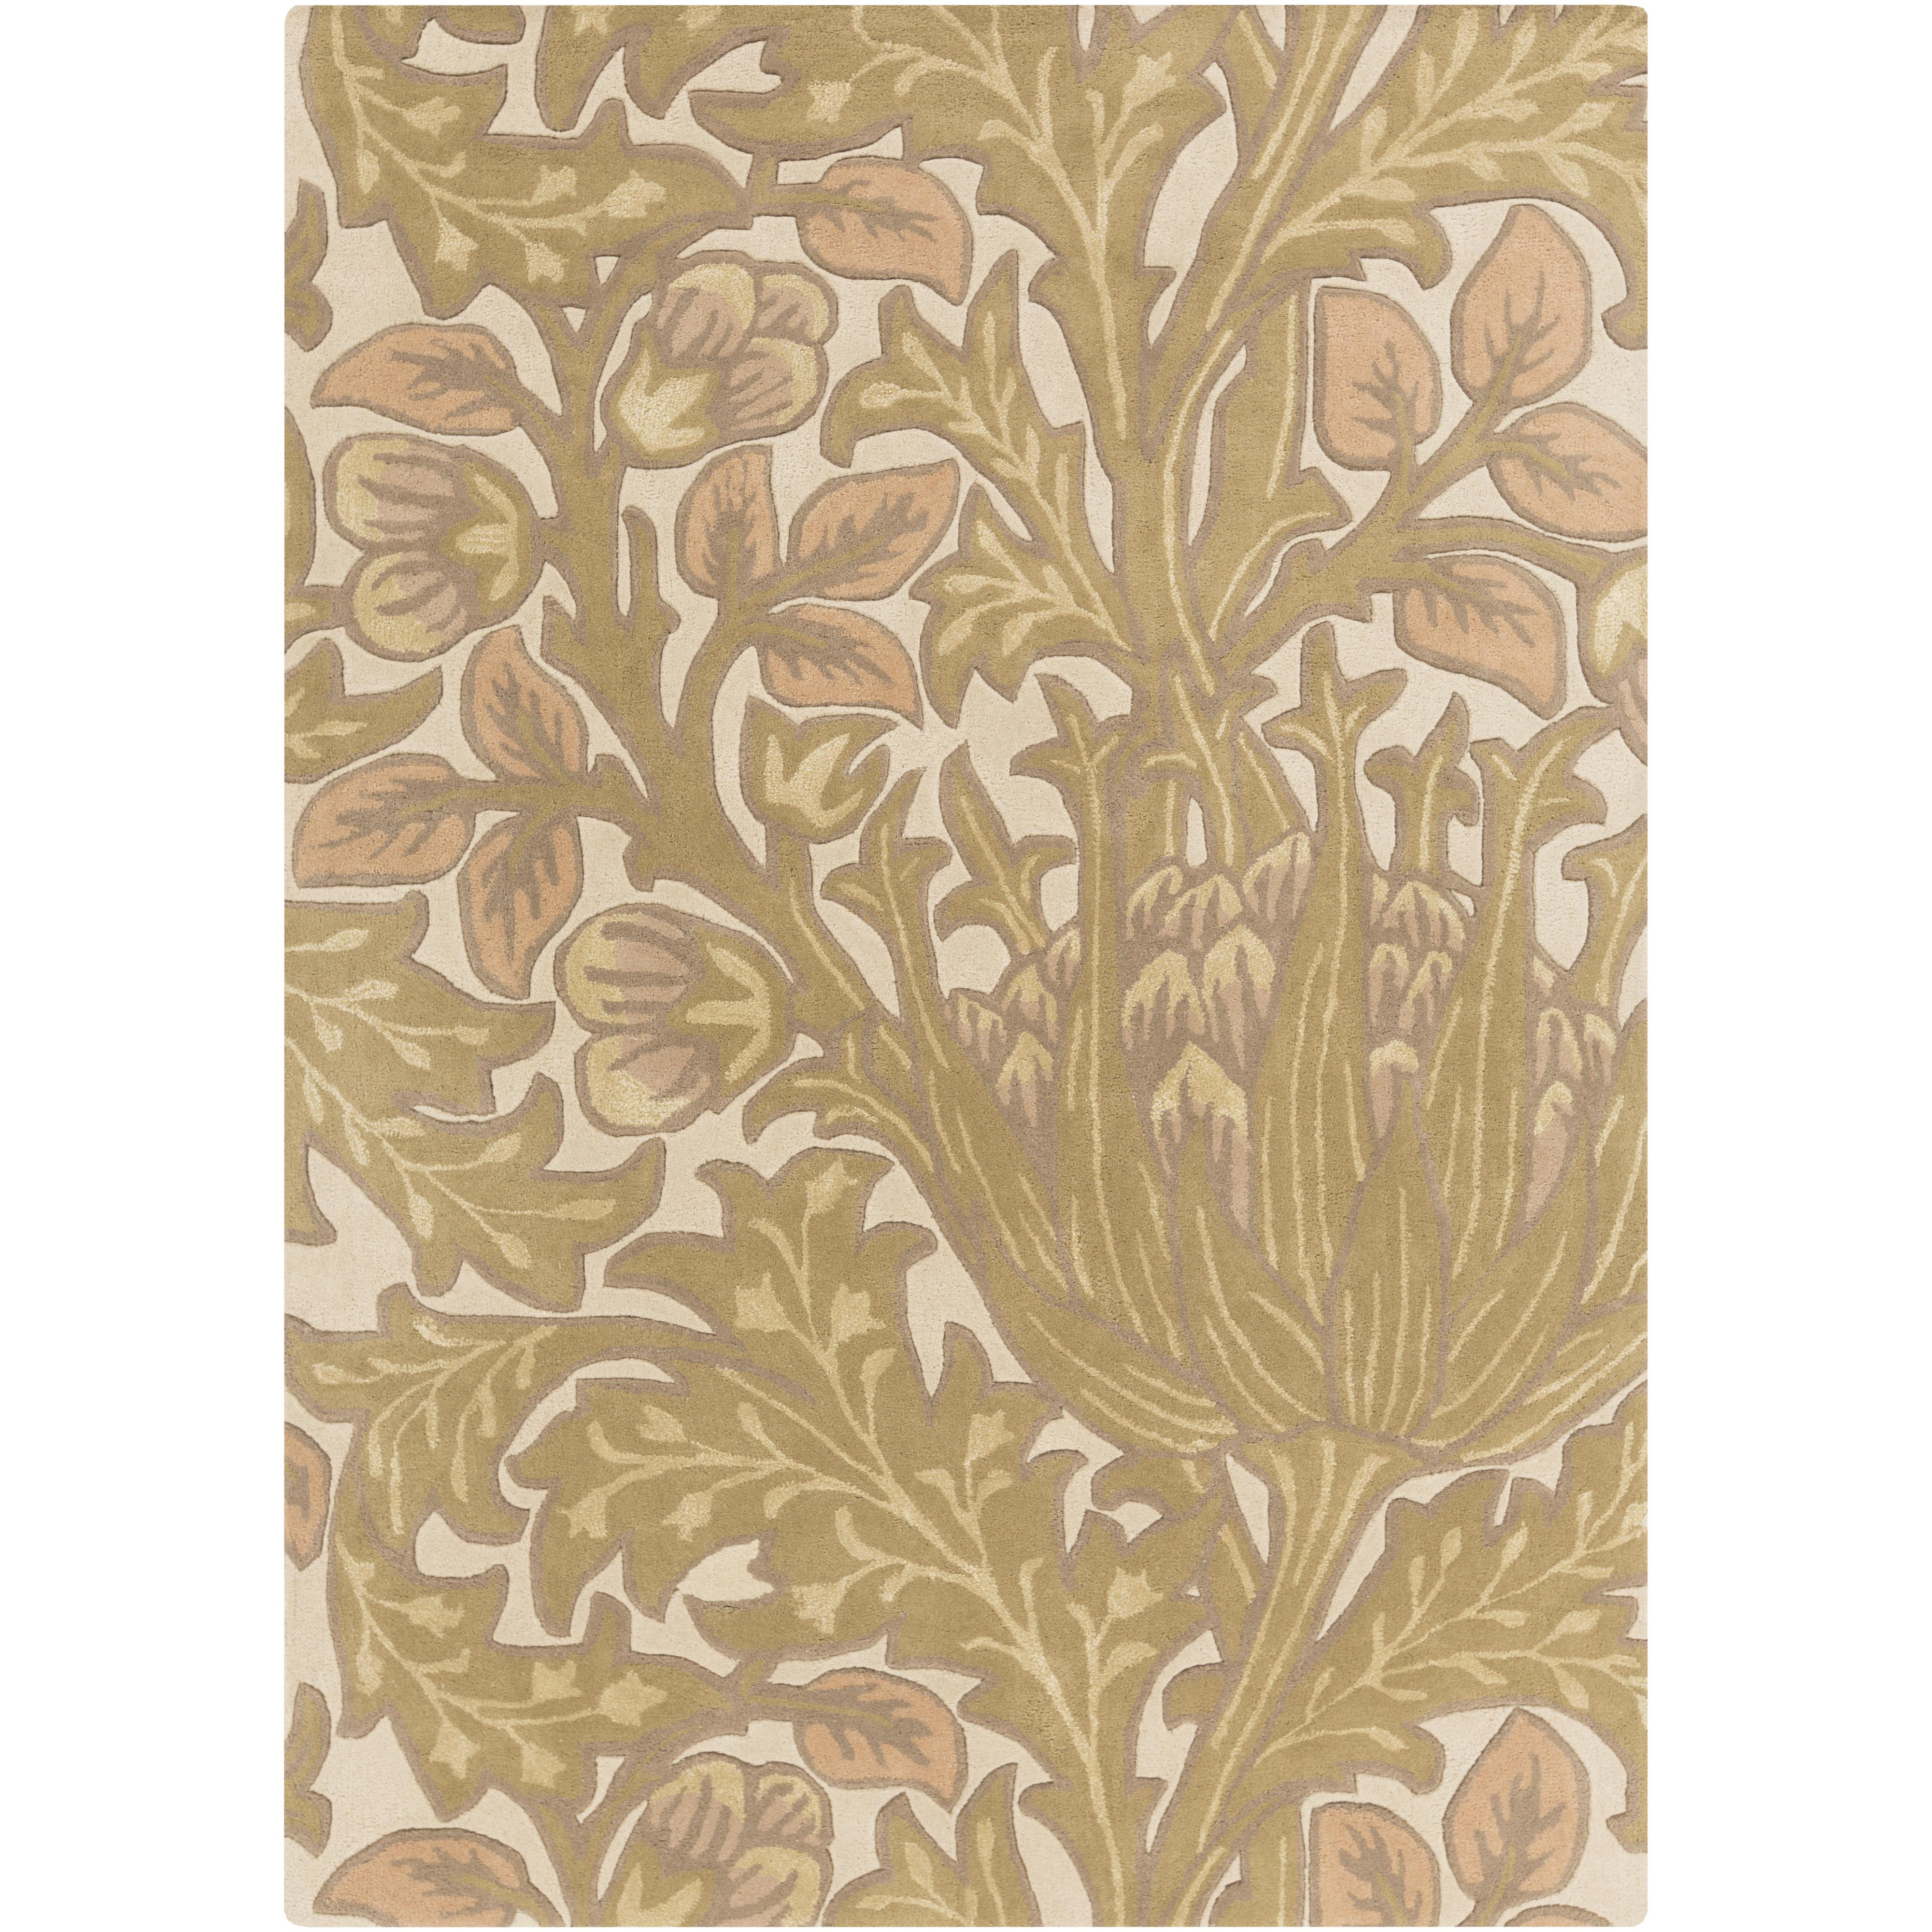 Surya Rugs William Morris 2' x 3' - Item Number: WLM3005-23